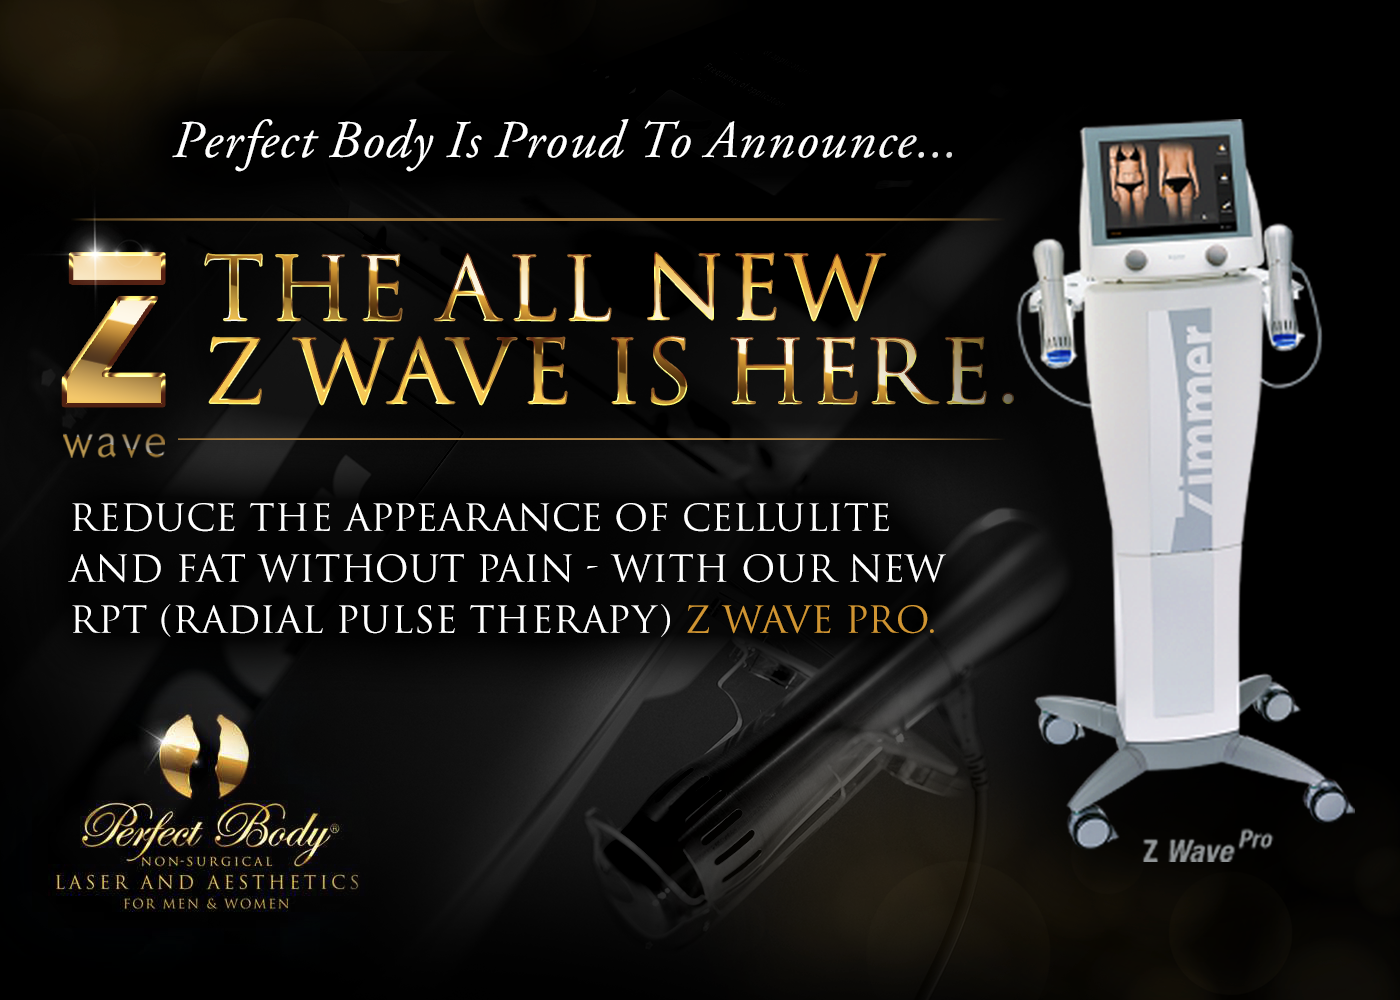 Z Wave Pro Cellulite Reduction Shock Wave Therapy Treatment is now at Perfect Body Laser!